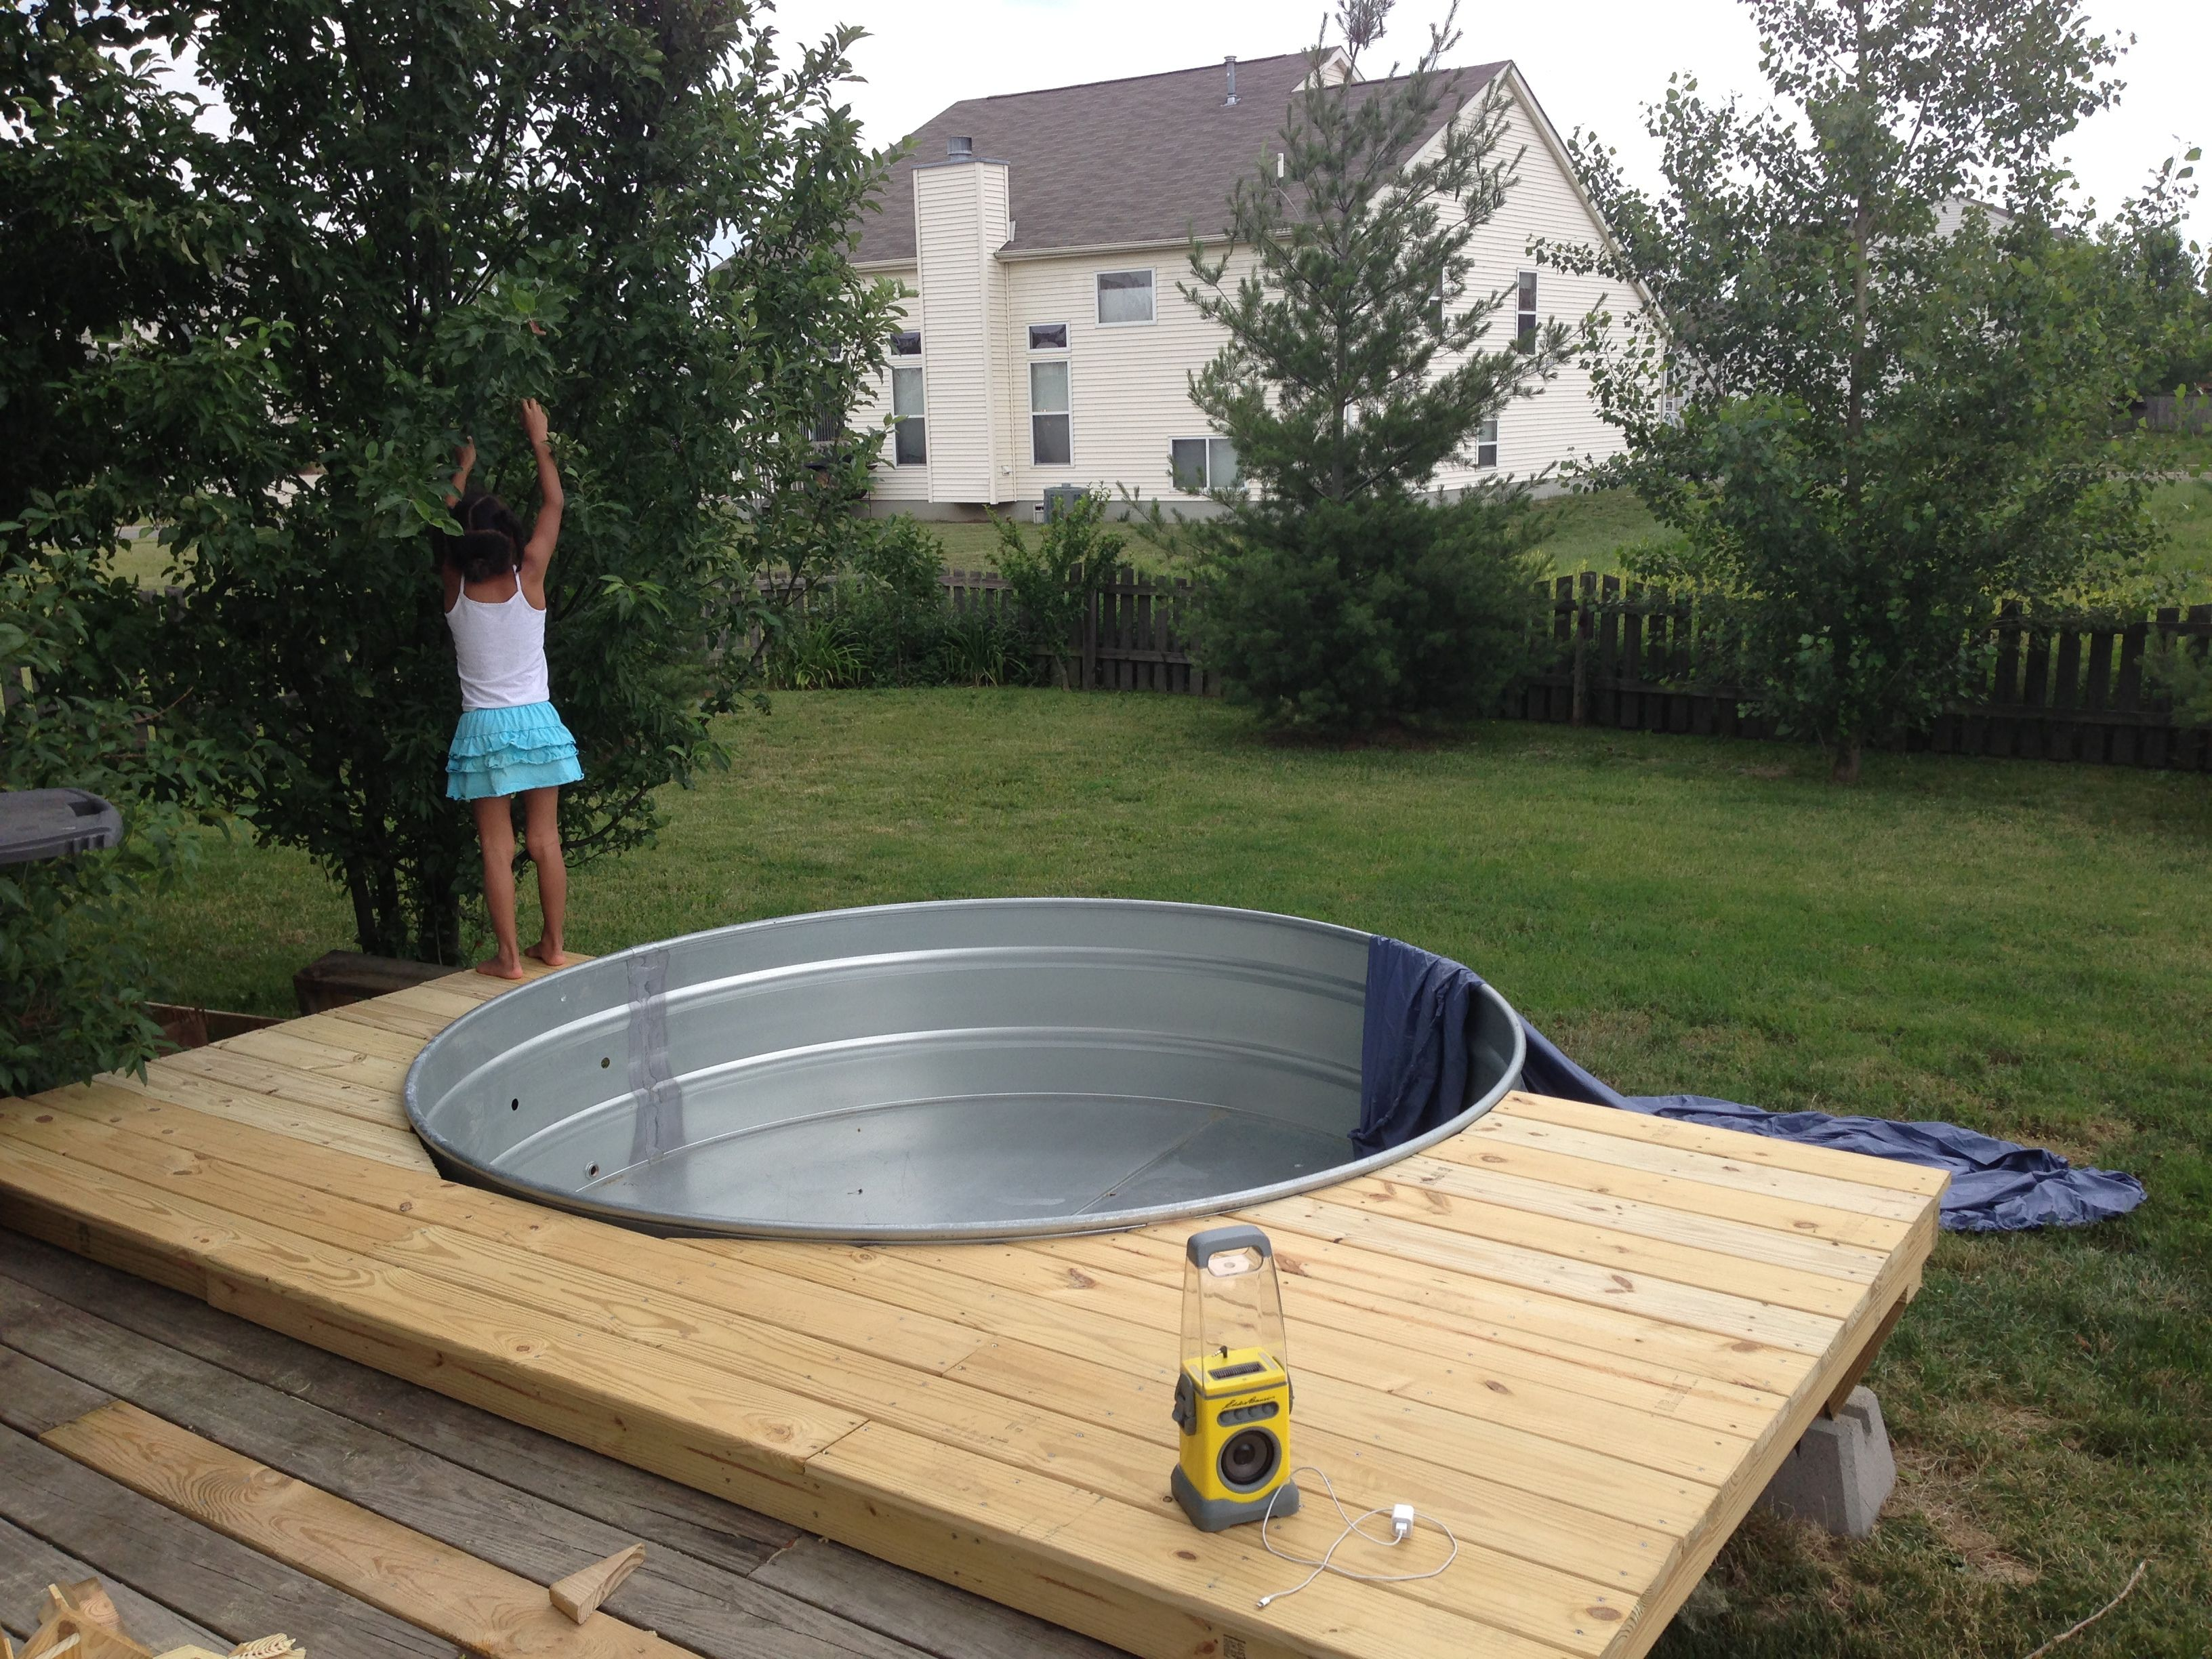 Pool Frame Rund My Stock Tank Pool With Sun Deck And Filter System Project Turned